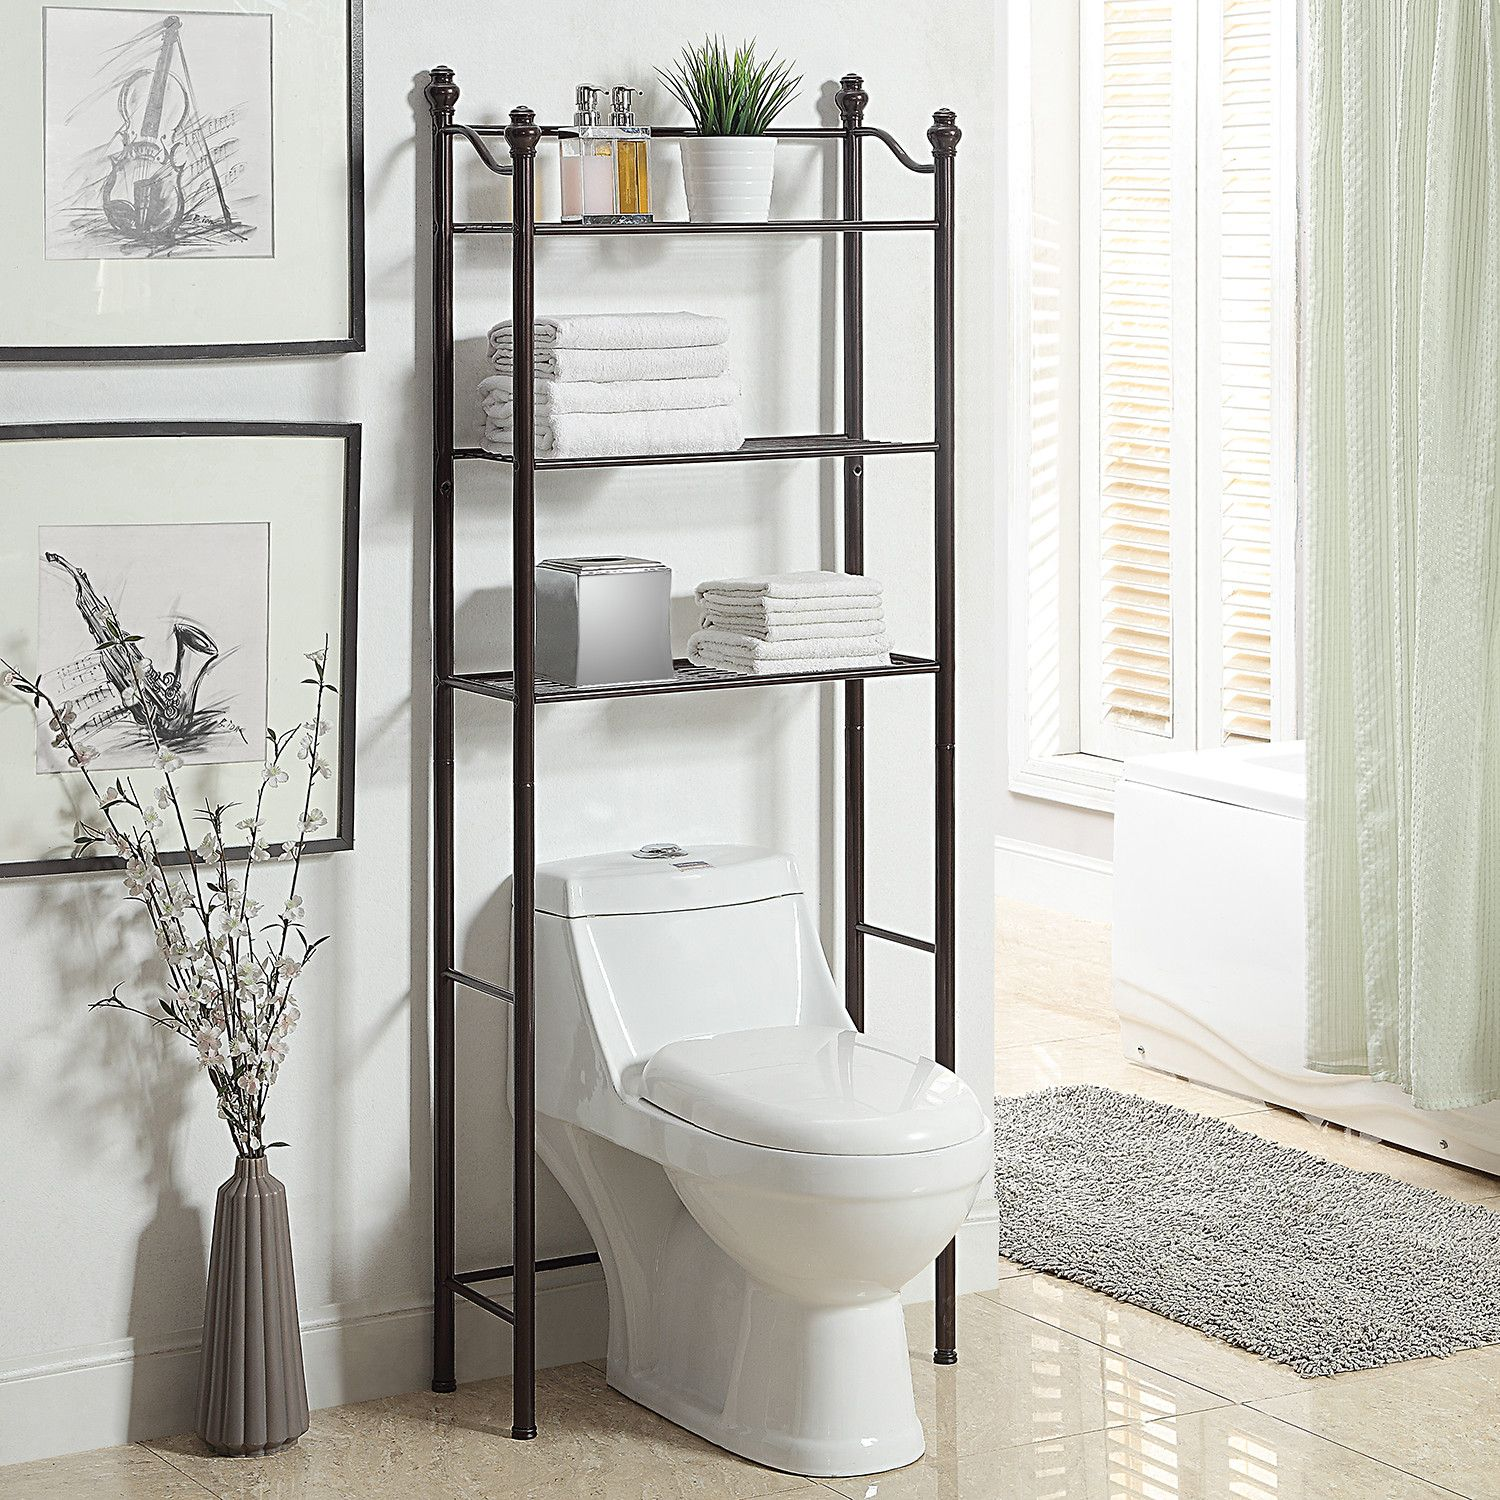 standing slim grey wall cabinets corner rack the unit narrow slimline shelves shelf wicker cabinet furniture towel over storage floor toilet bathroom free